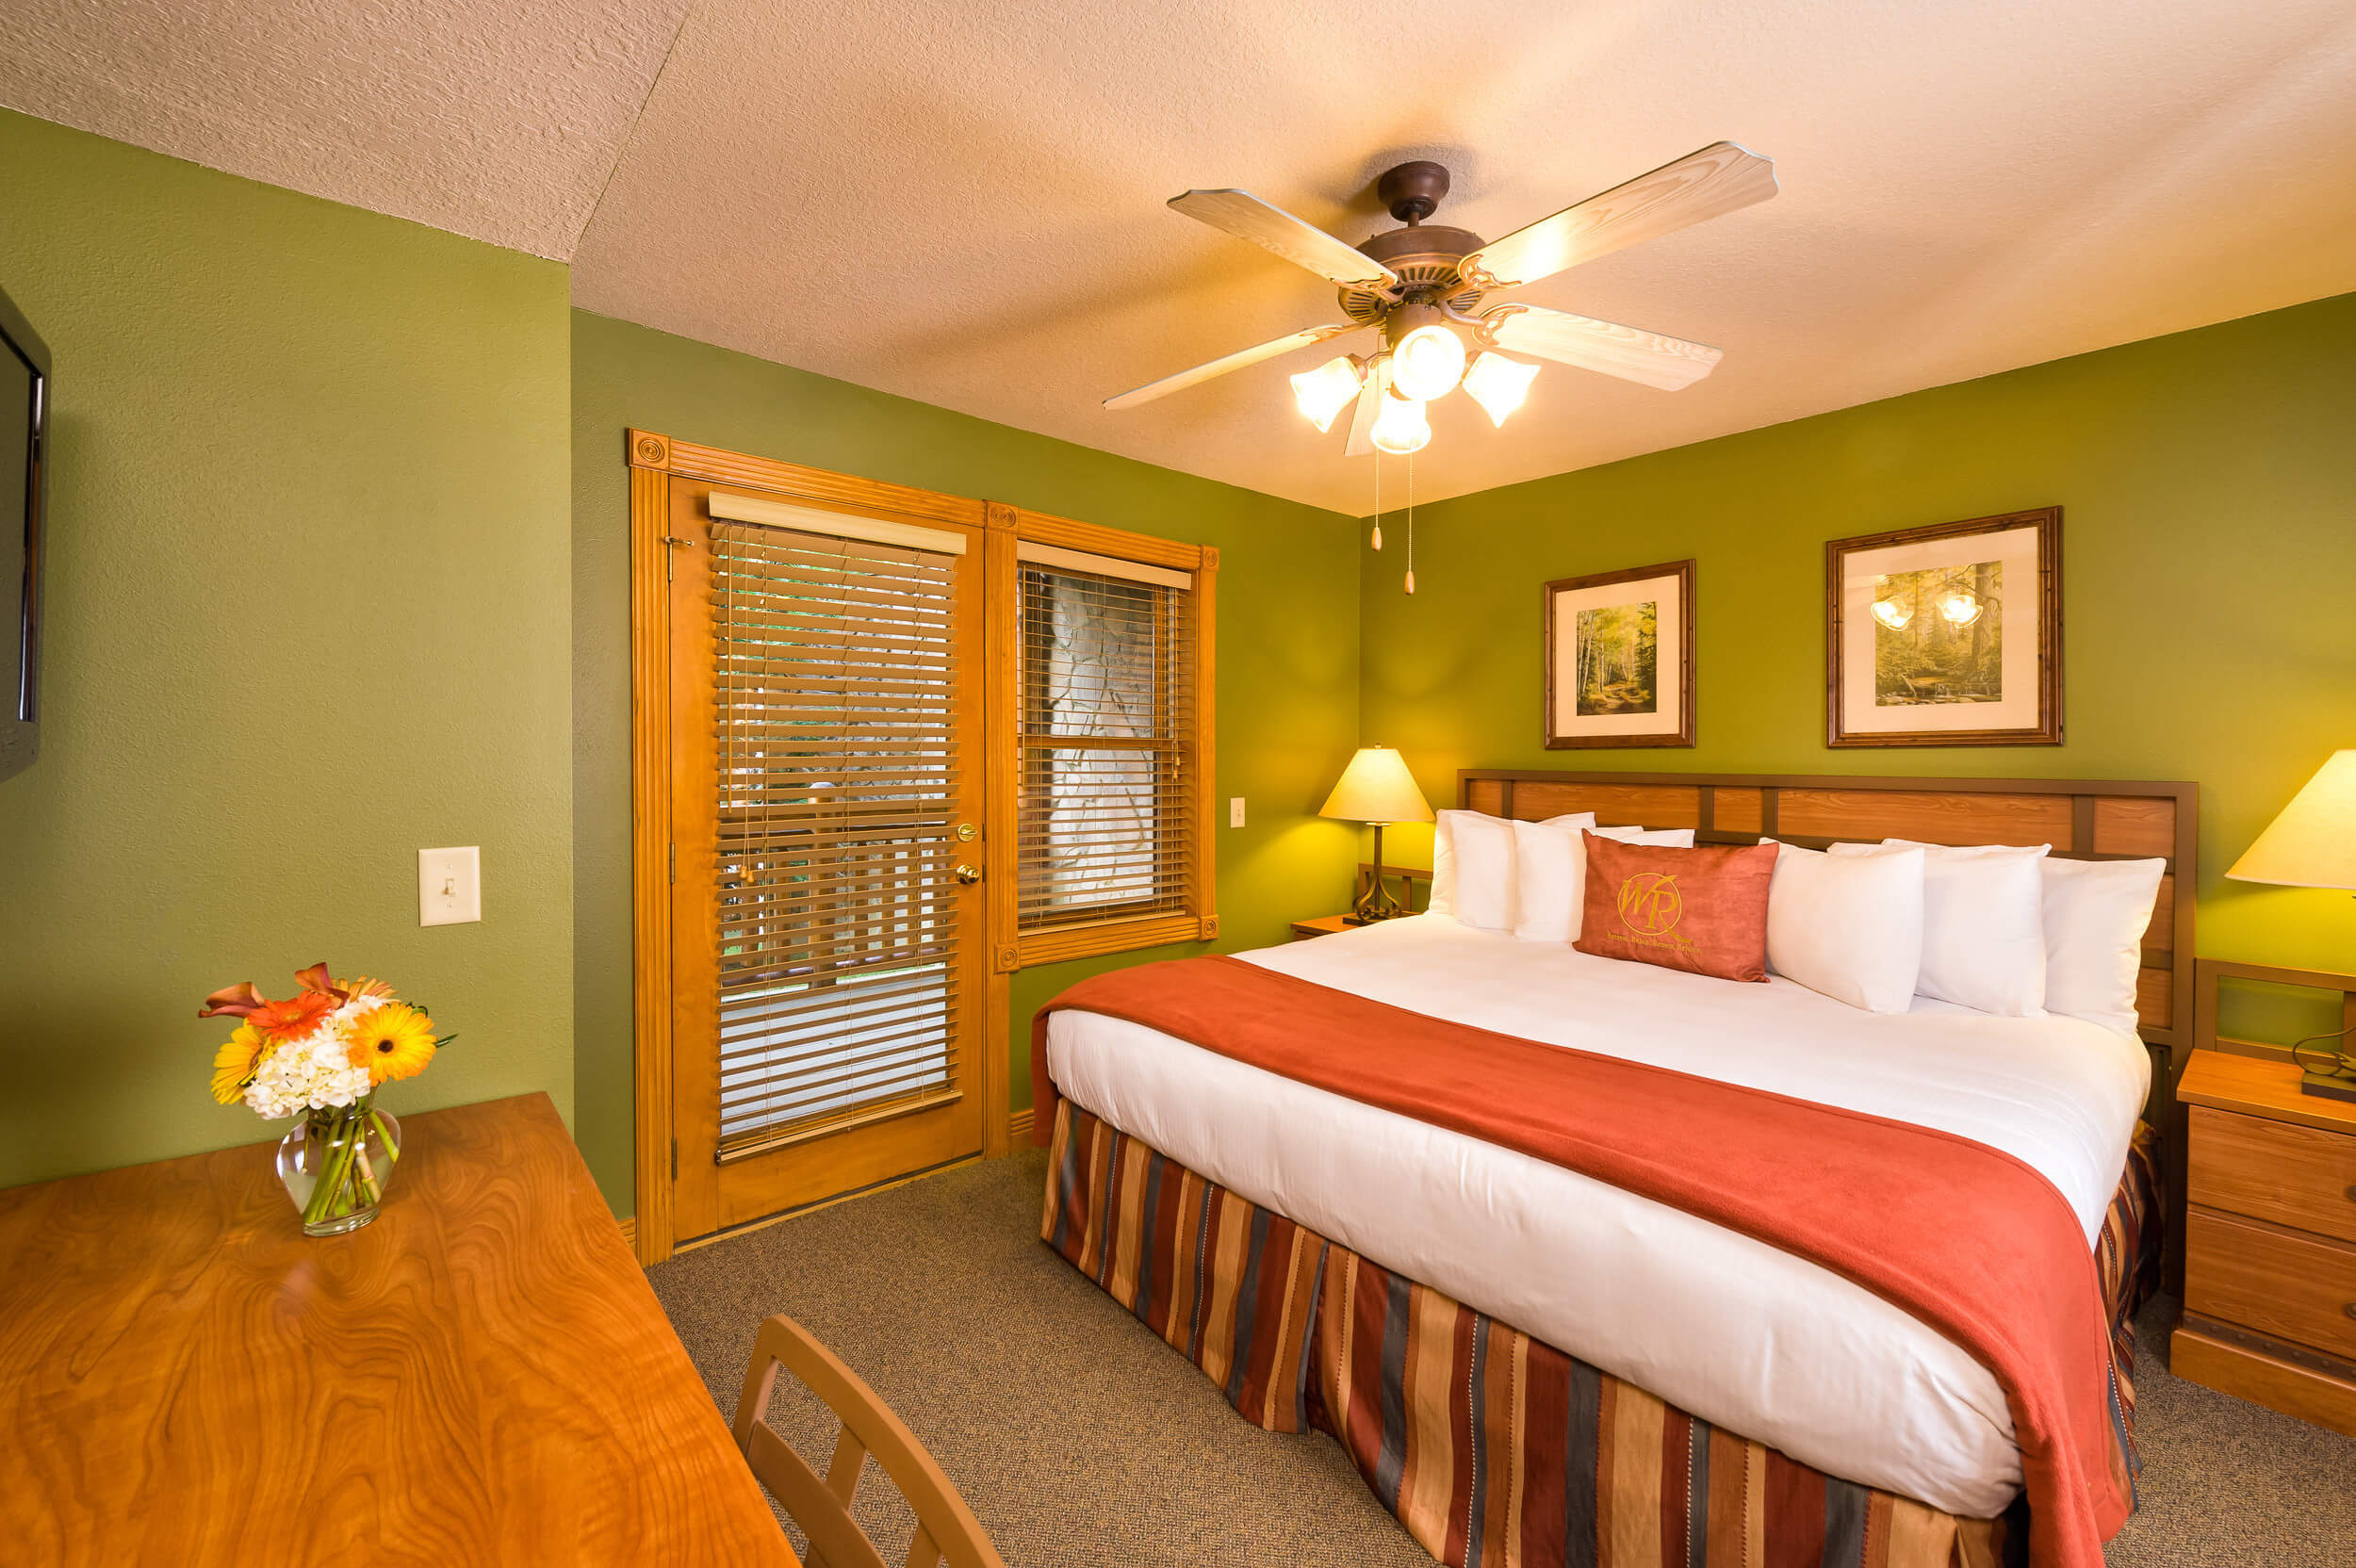 5 Bedroom Suites at Our Gatlinburg Resort near the Smoky Mountains | King Bed Suite